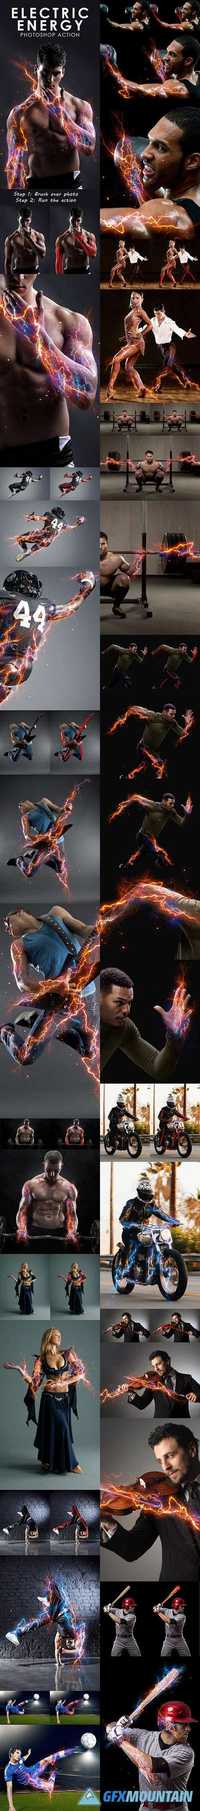 GraphicRiver - Electric Energy Photoshop Action 16607820